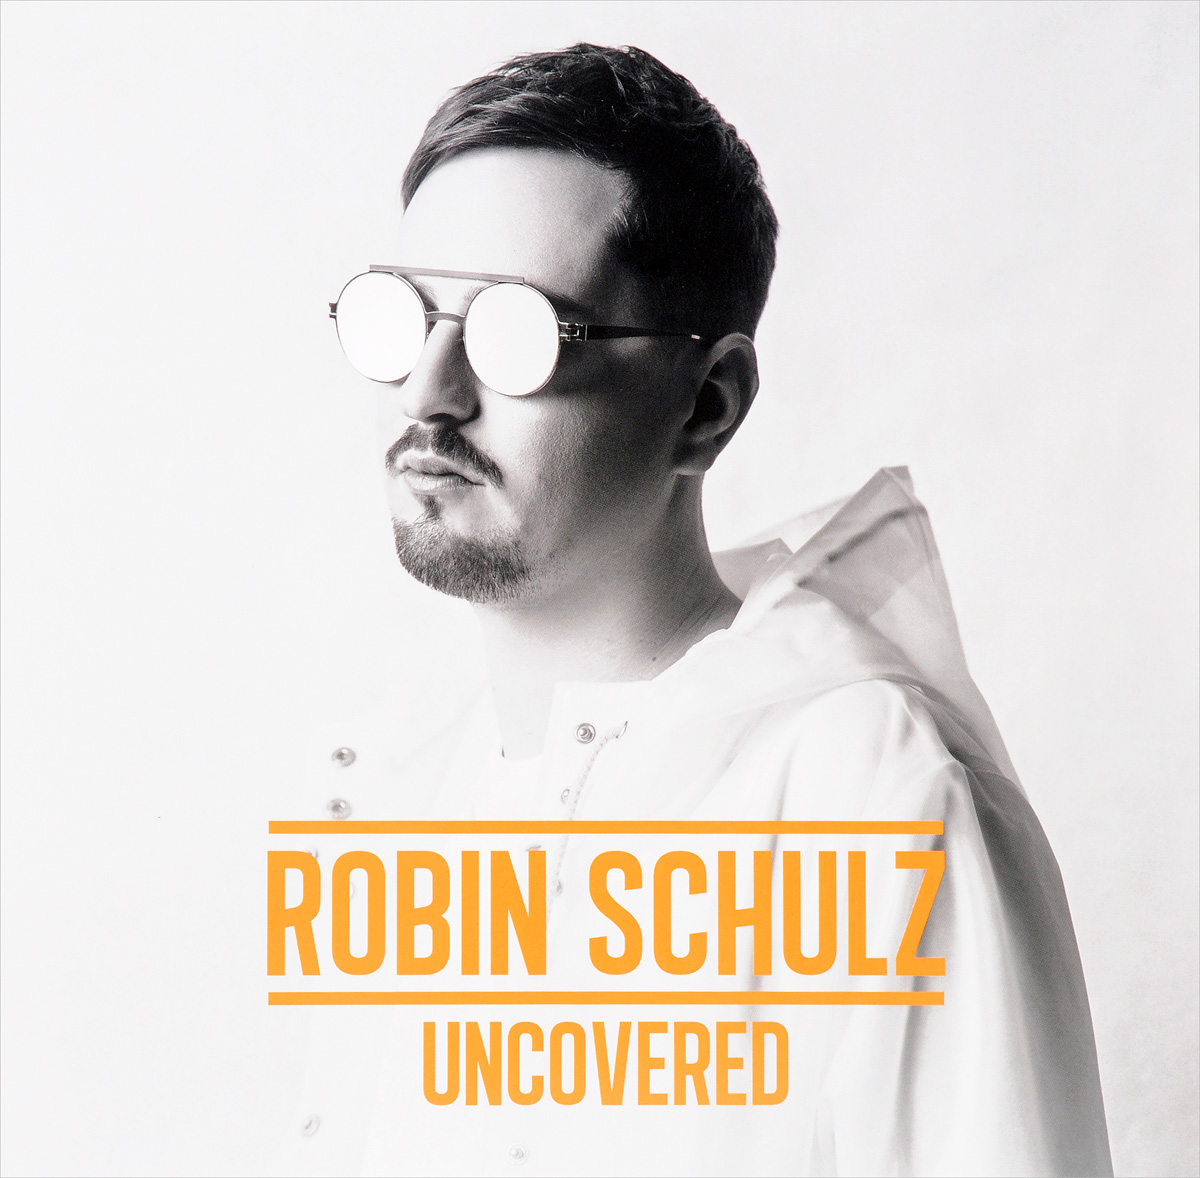 Робин Шульц Robin Schulz. Uncovered. Deluxe (2 LP + CD) hurts hurts surrender 2 lp cd